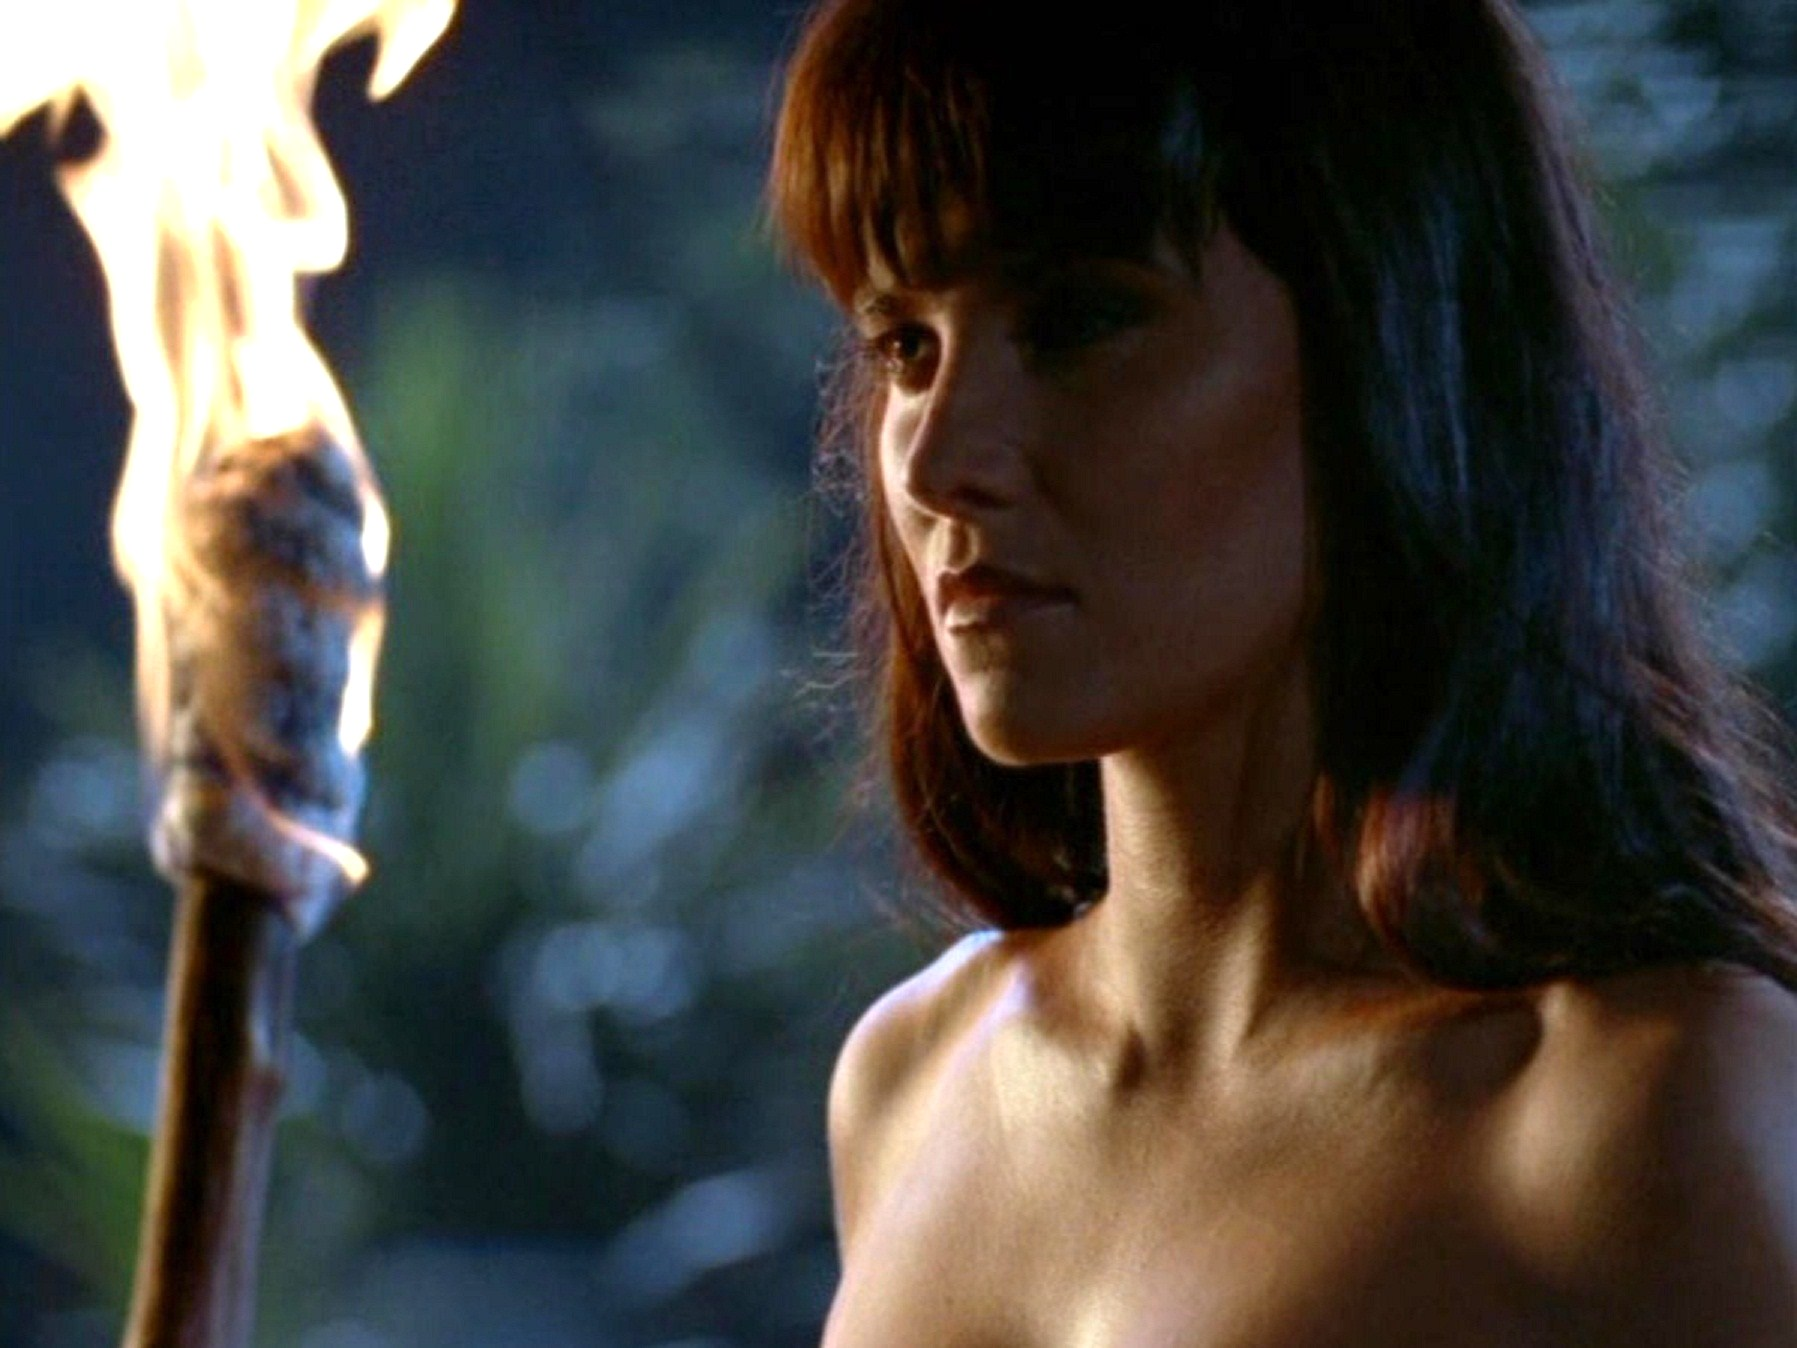 The Furies (episode) - The Xena: Warrior Princess and